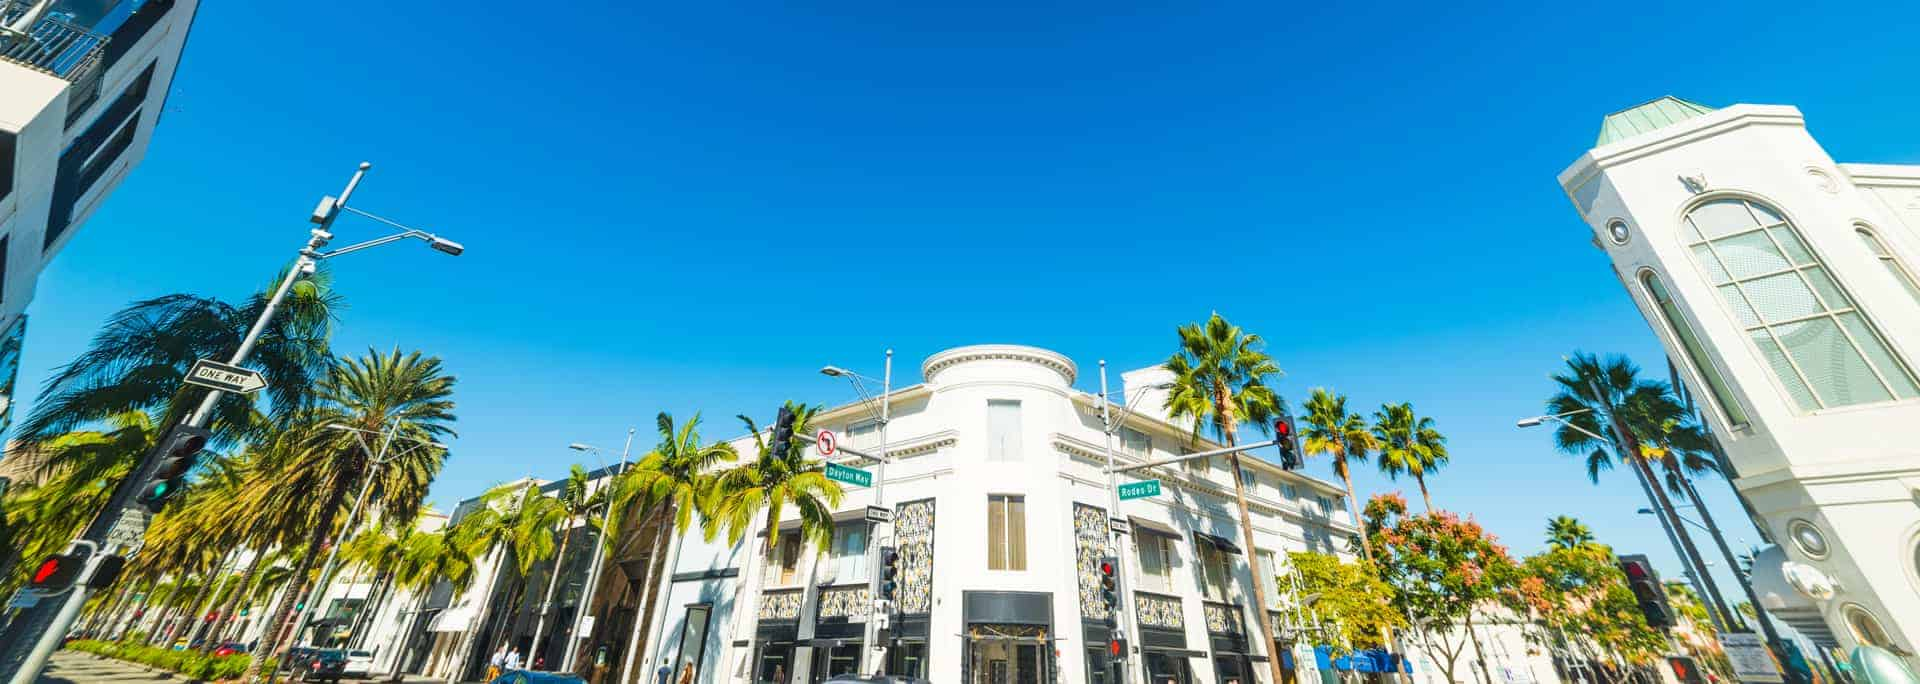 Hollywood Bus Tours - Rodeo Drive - Hollywood Sightseeing Tours